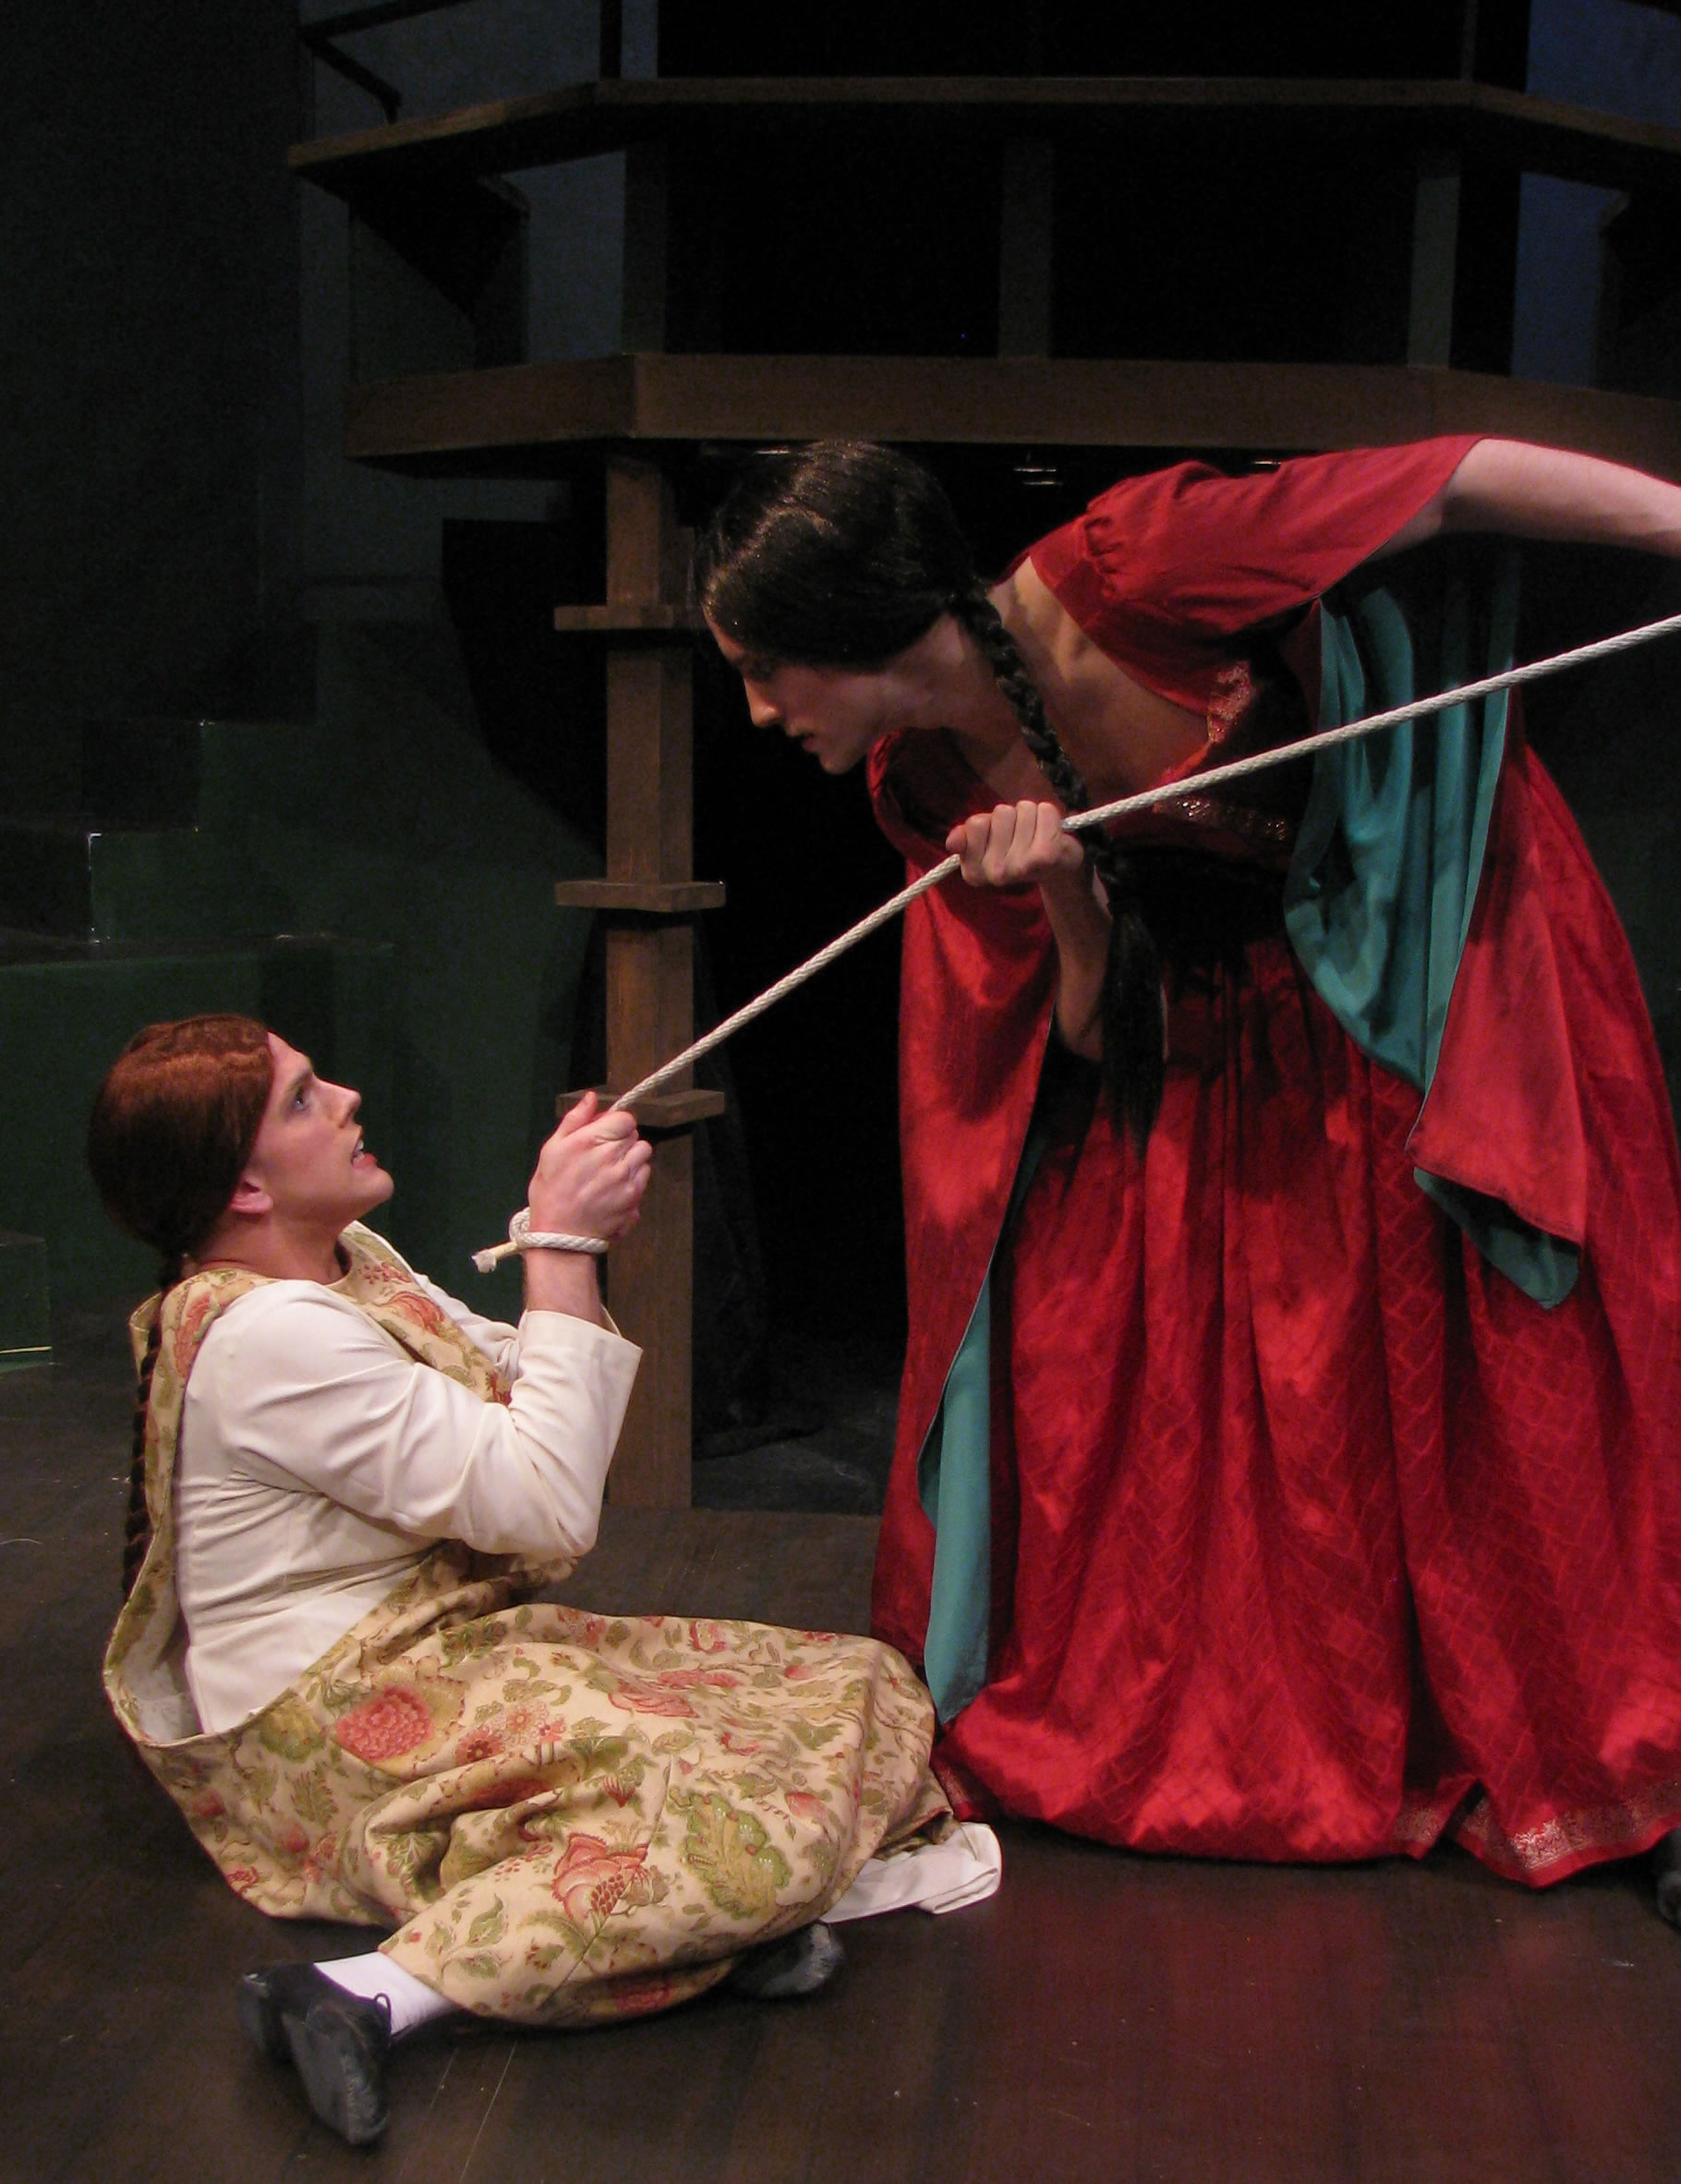 taming of the shrew katherine essays Further study test your knowledge of the taming of the shrew with our quizzes and study questions, or go further with essays on the context and background and links to the best resources around the web.